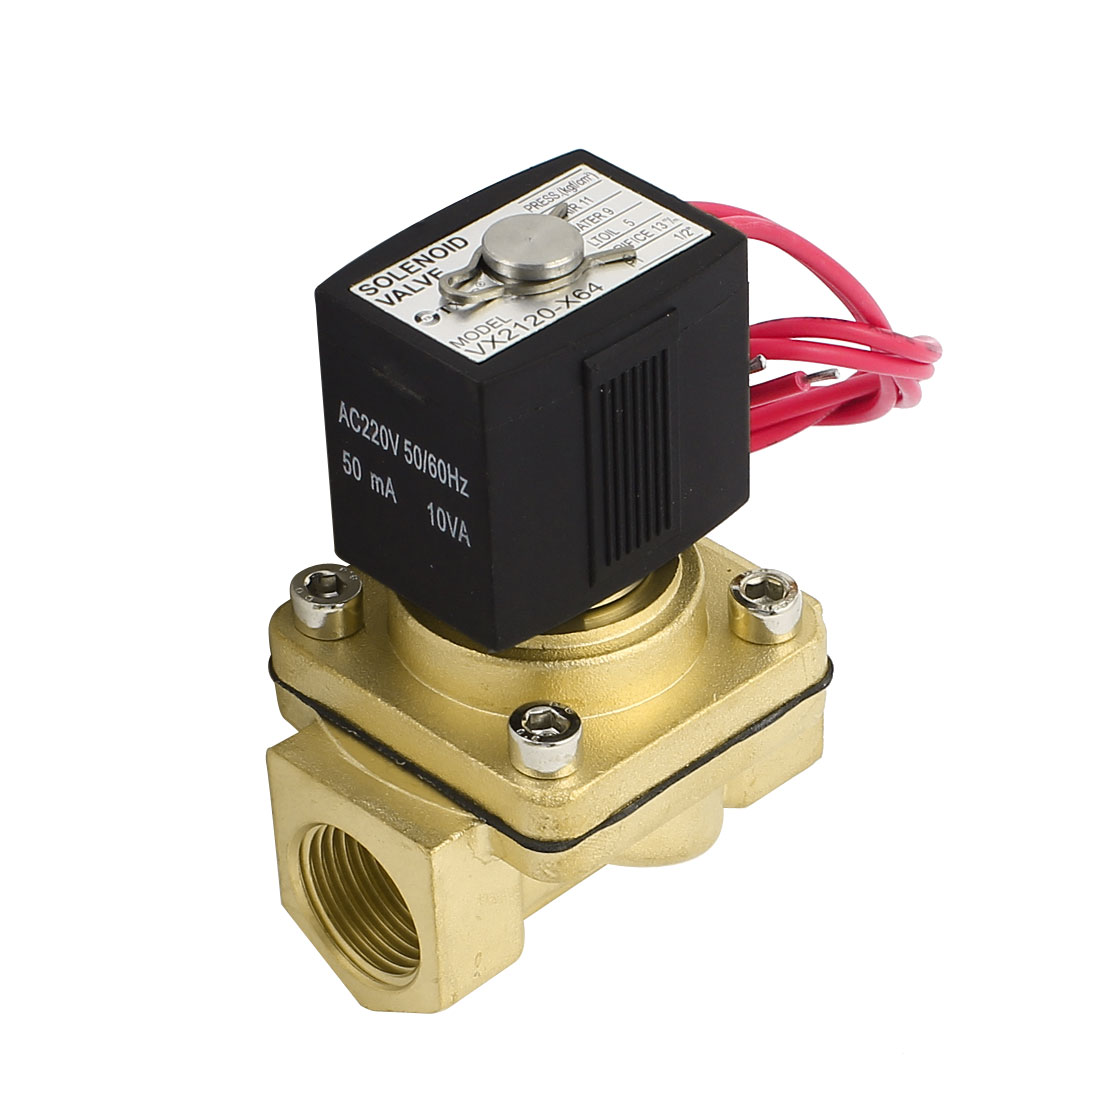 AC 220V 50mA 1/2PT Threaded 2 Port 2 Position Solenoid Valve